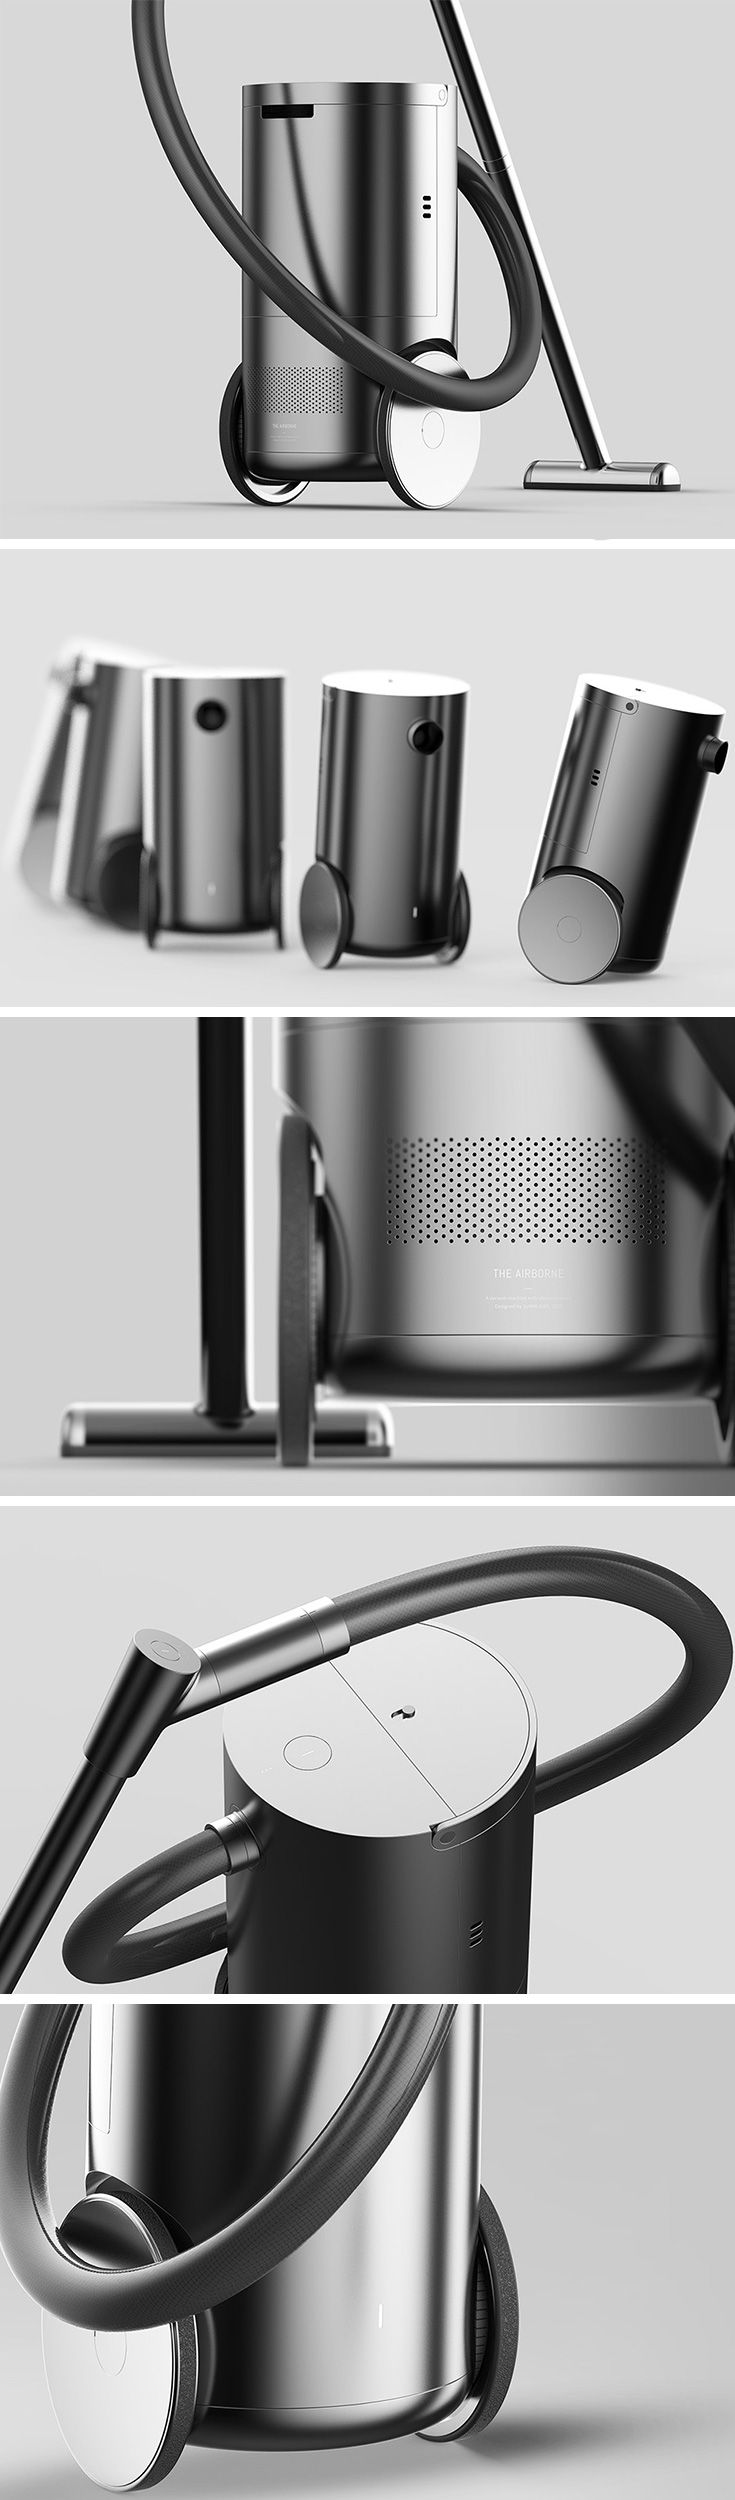 """Canister style vacuums offer unmatched suction power, but users often find themselves lugging the heavy body from area to area which can be exhausting and time consuming. The Airborne vacuum (named after its ability to """"float"""" around with the user) addresses this issue with a power-assist segway system that intuitively follows the user as they traverse from room to room and around furniture."""